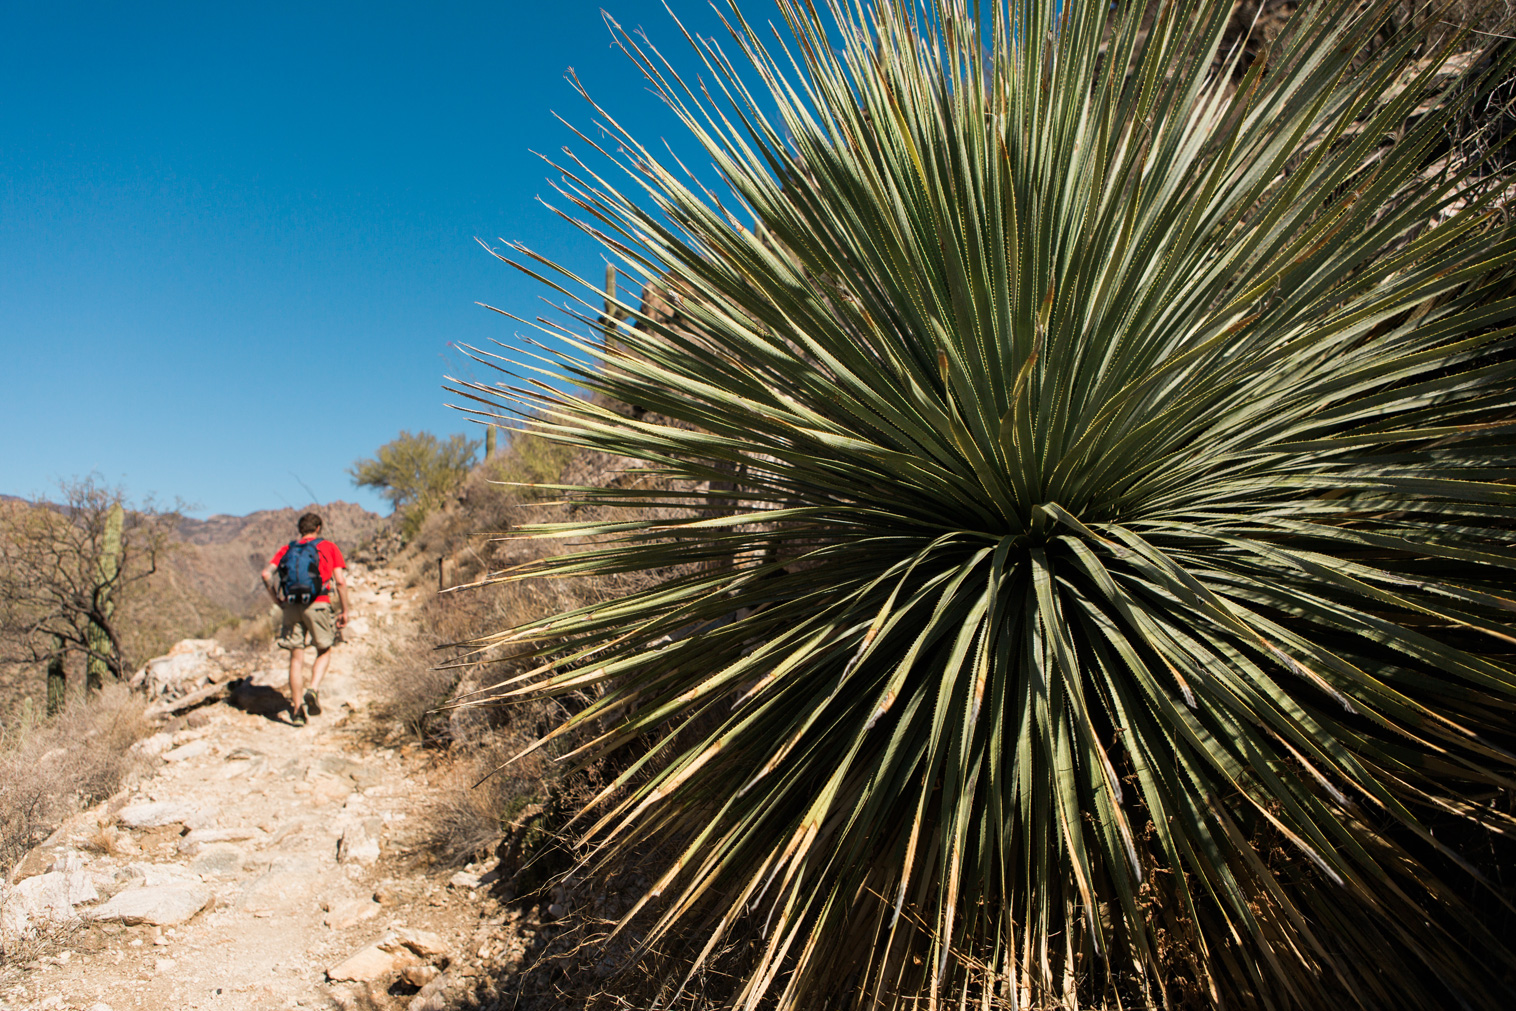 CindyGiovagnoli_Tucson_Arizona_Sabino_Canyon_Phone_Line_Trail_Uinta_Brewing_saguaro_cactus_desert_hiking-001.jpg